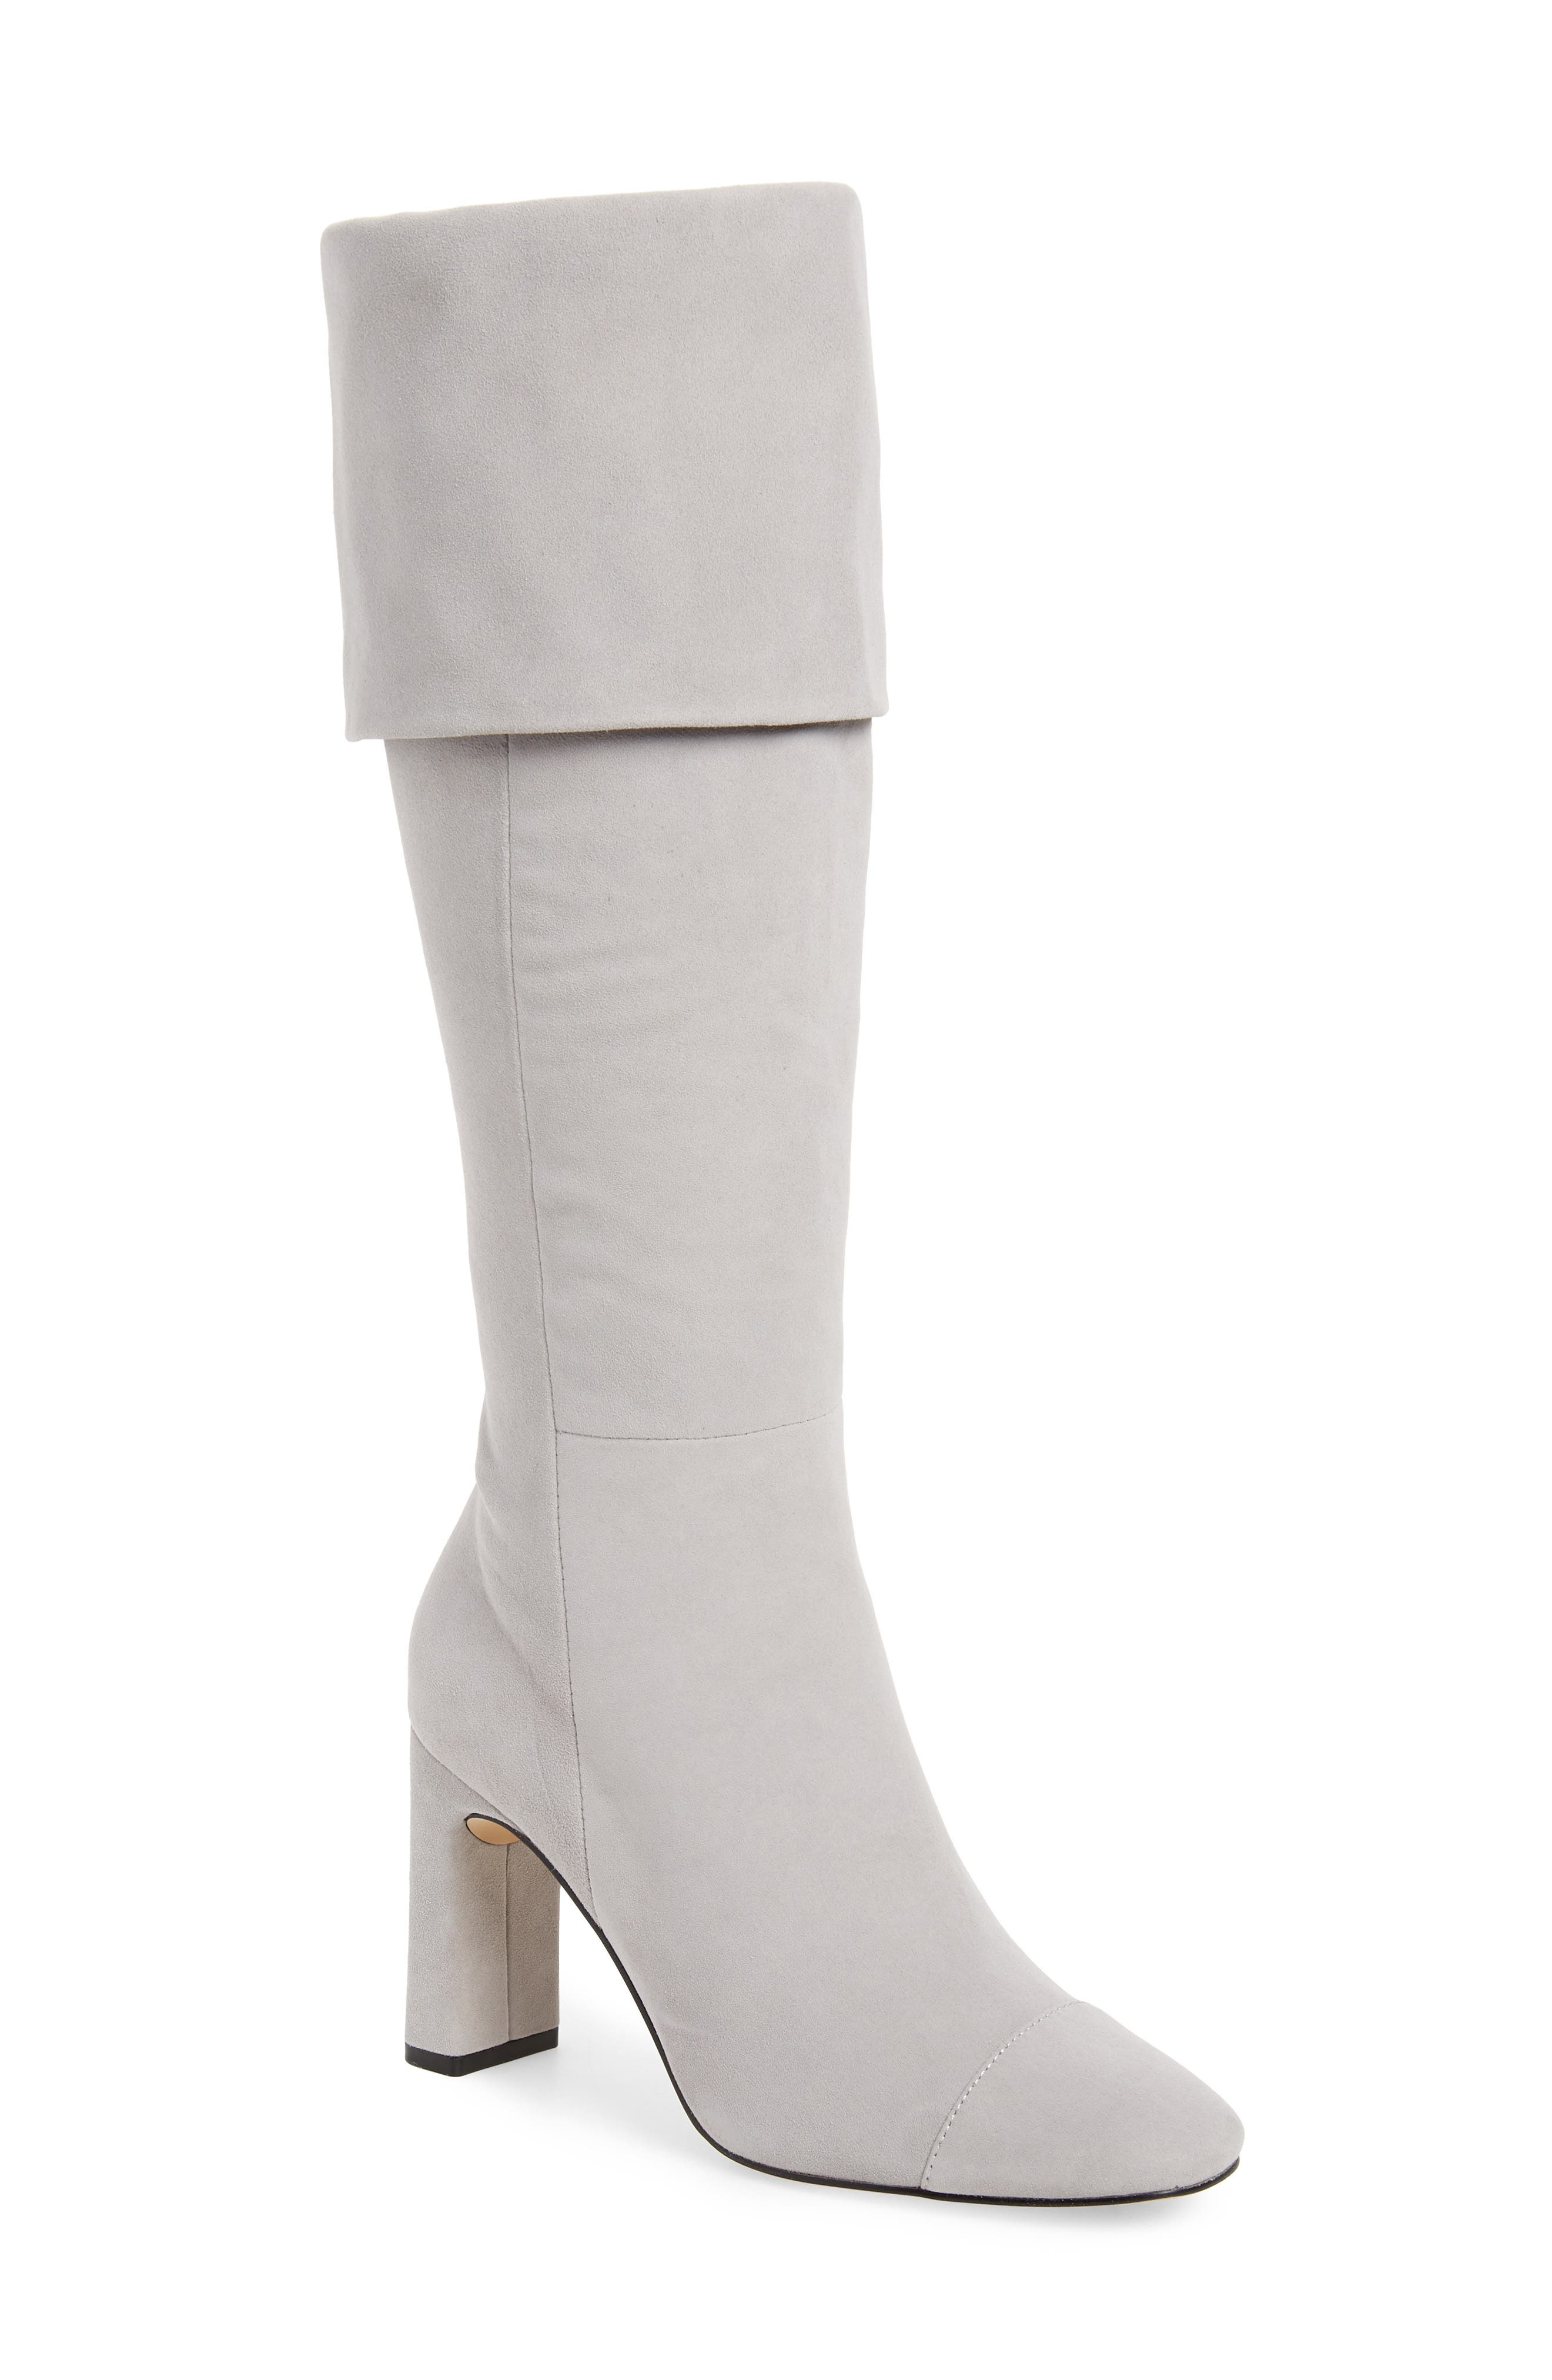 Mia Knee High Boot,                             Main thumbnail 1, color,                             LIGHT GREY SUEDE